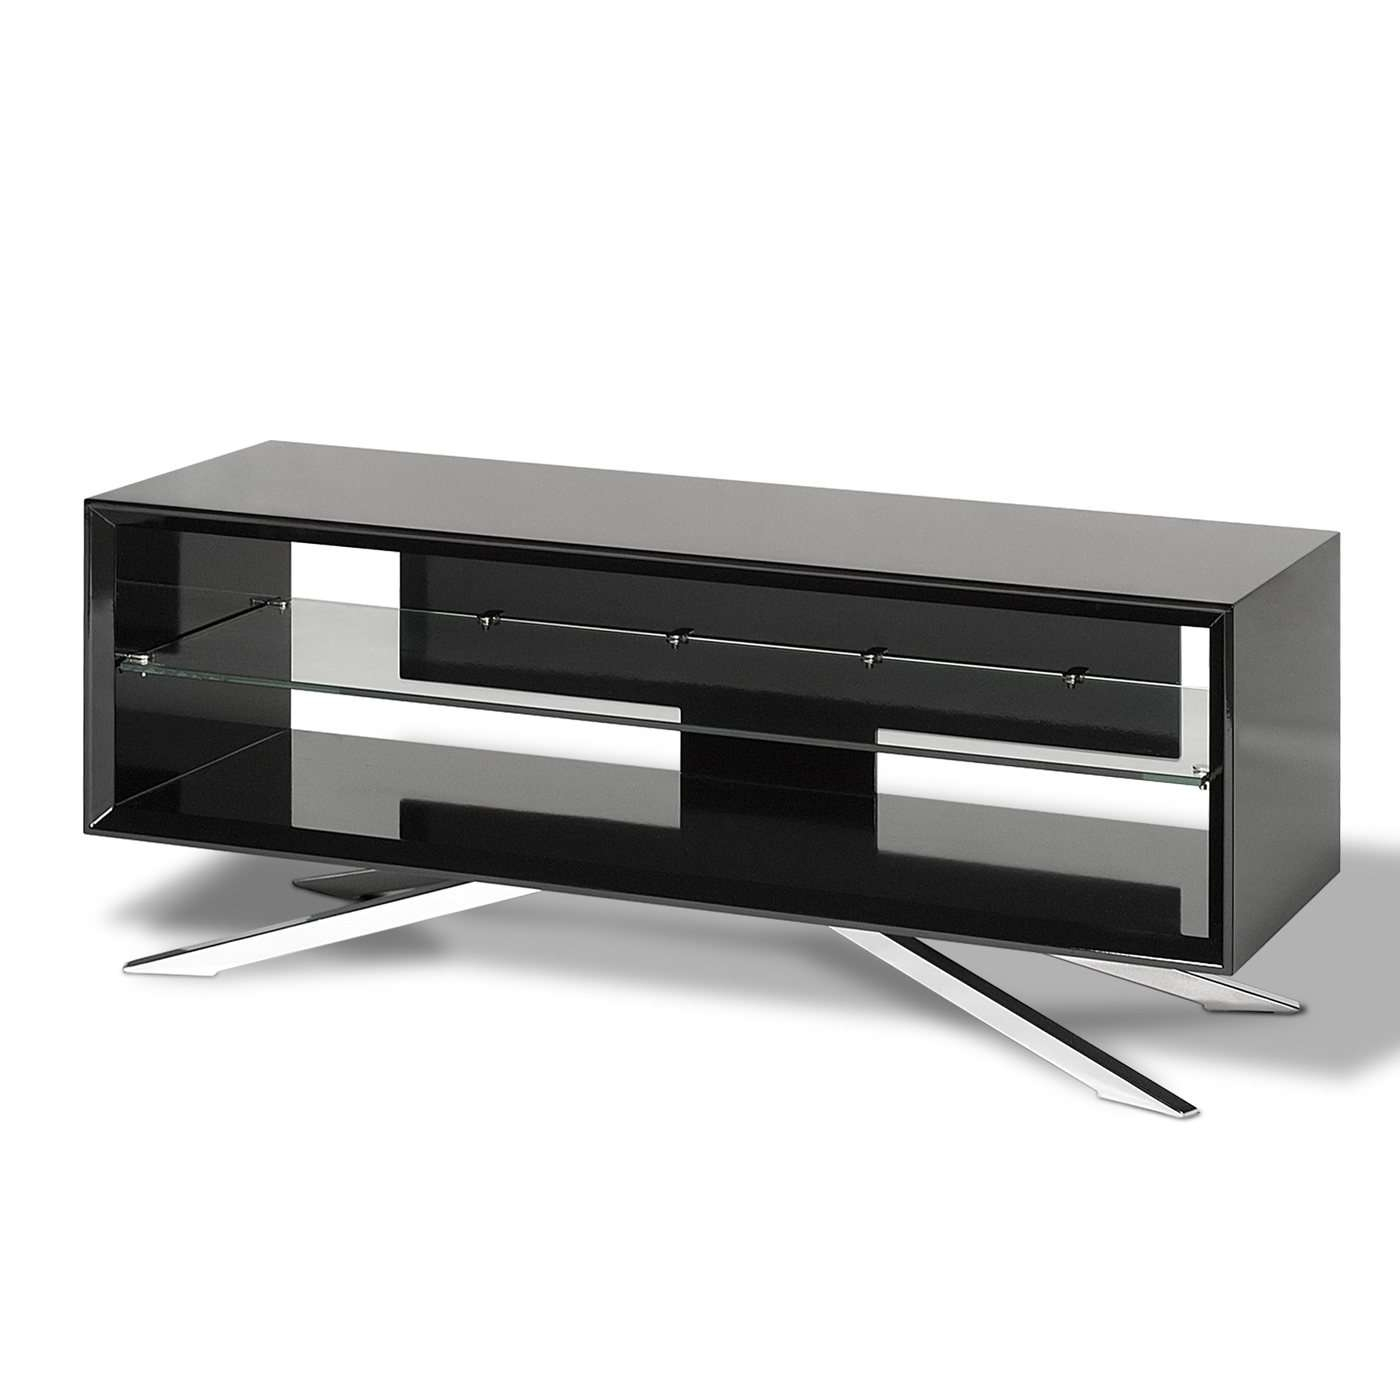 Tv : Techlink Aa Arena Tv Stand G Beautiful Techlink Arena Tv With Regard To Techlink Arena Tv Stands (View 12 of 15)